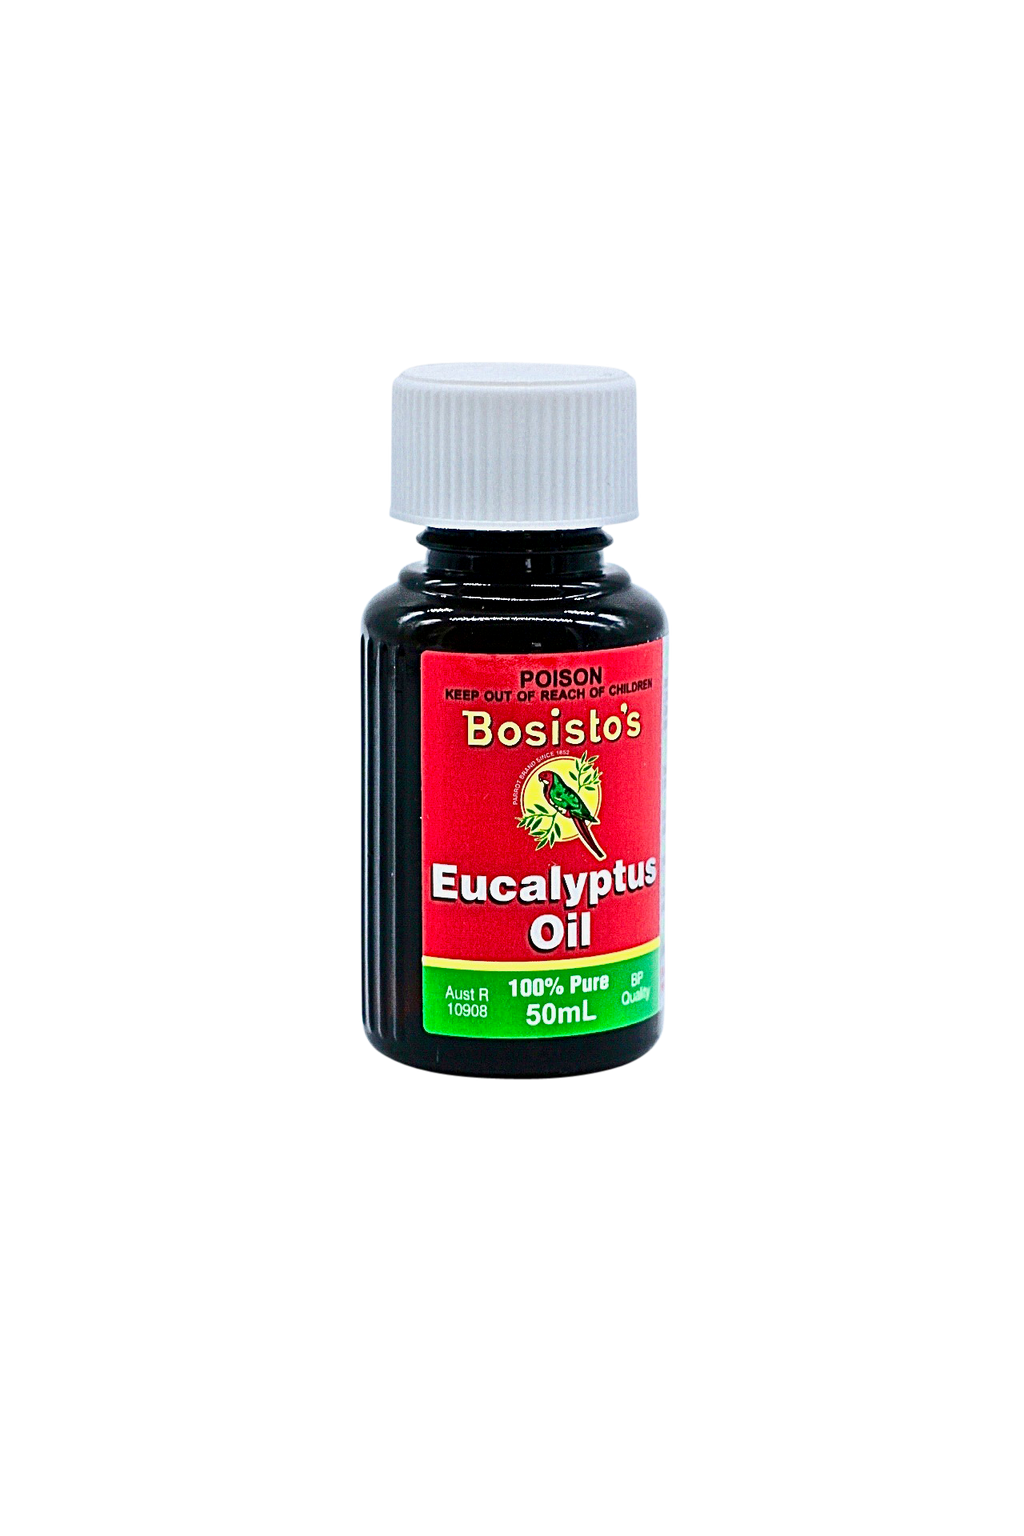 Bottle pure eucalyptus oil